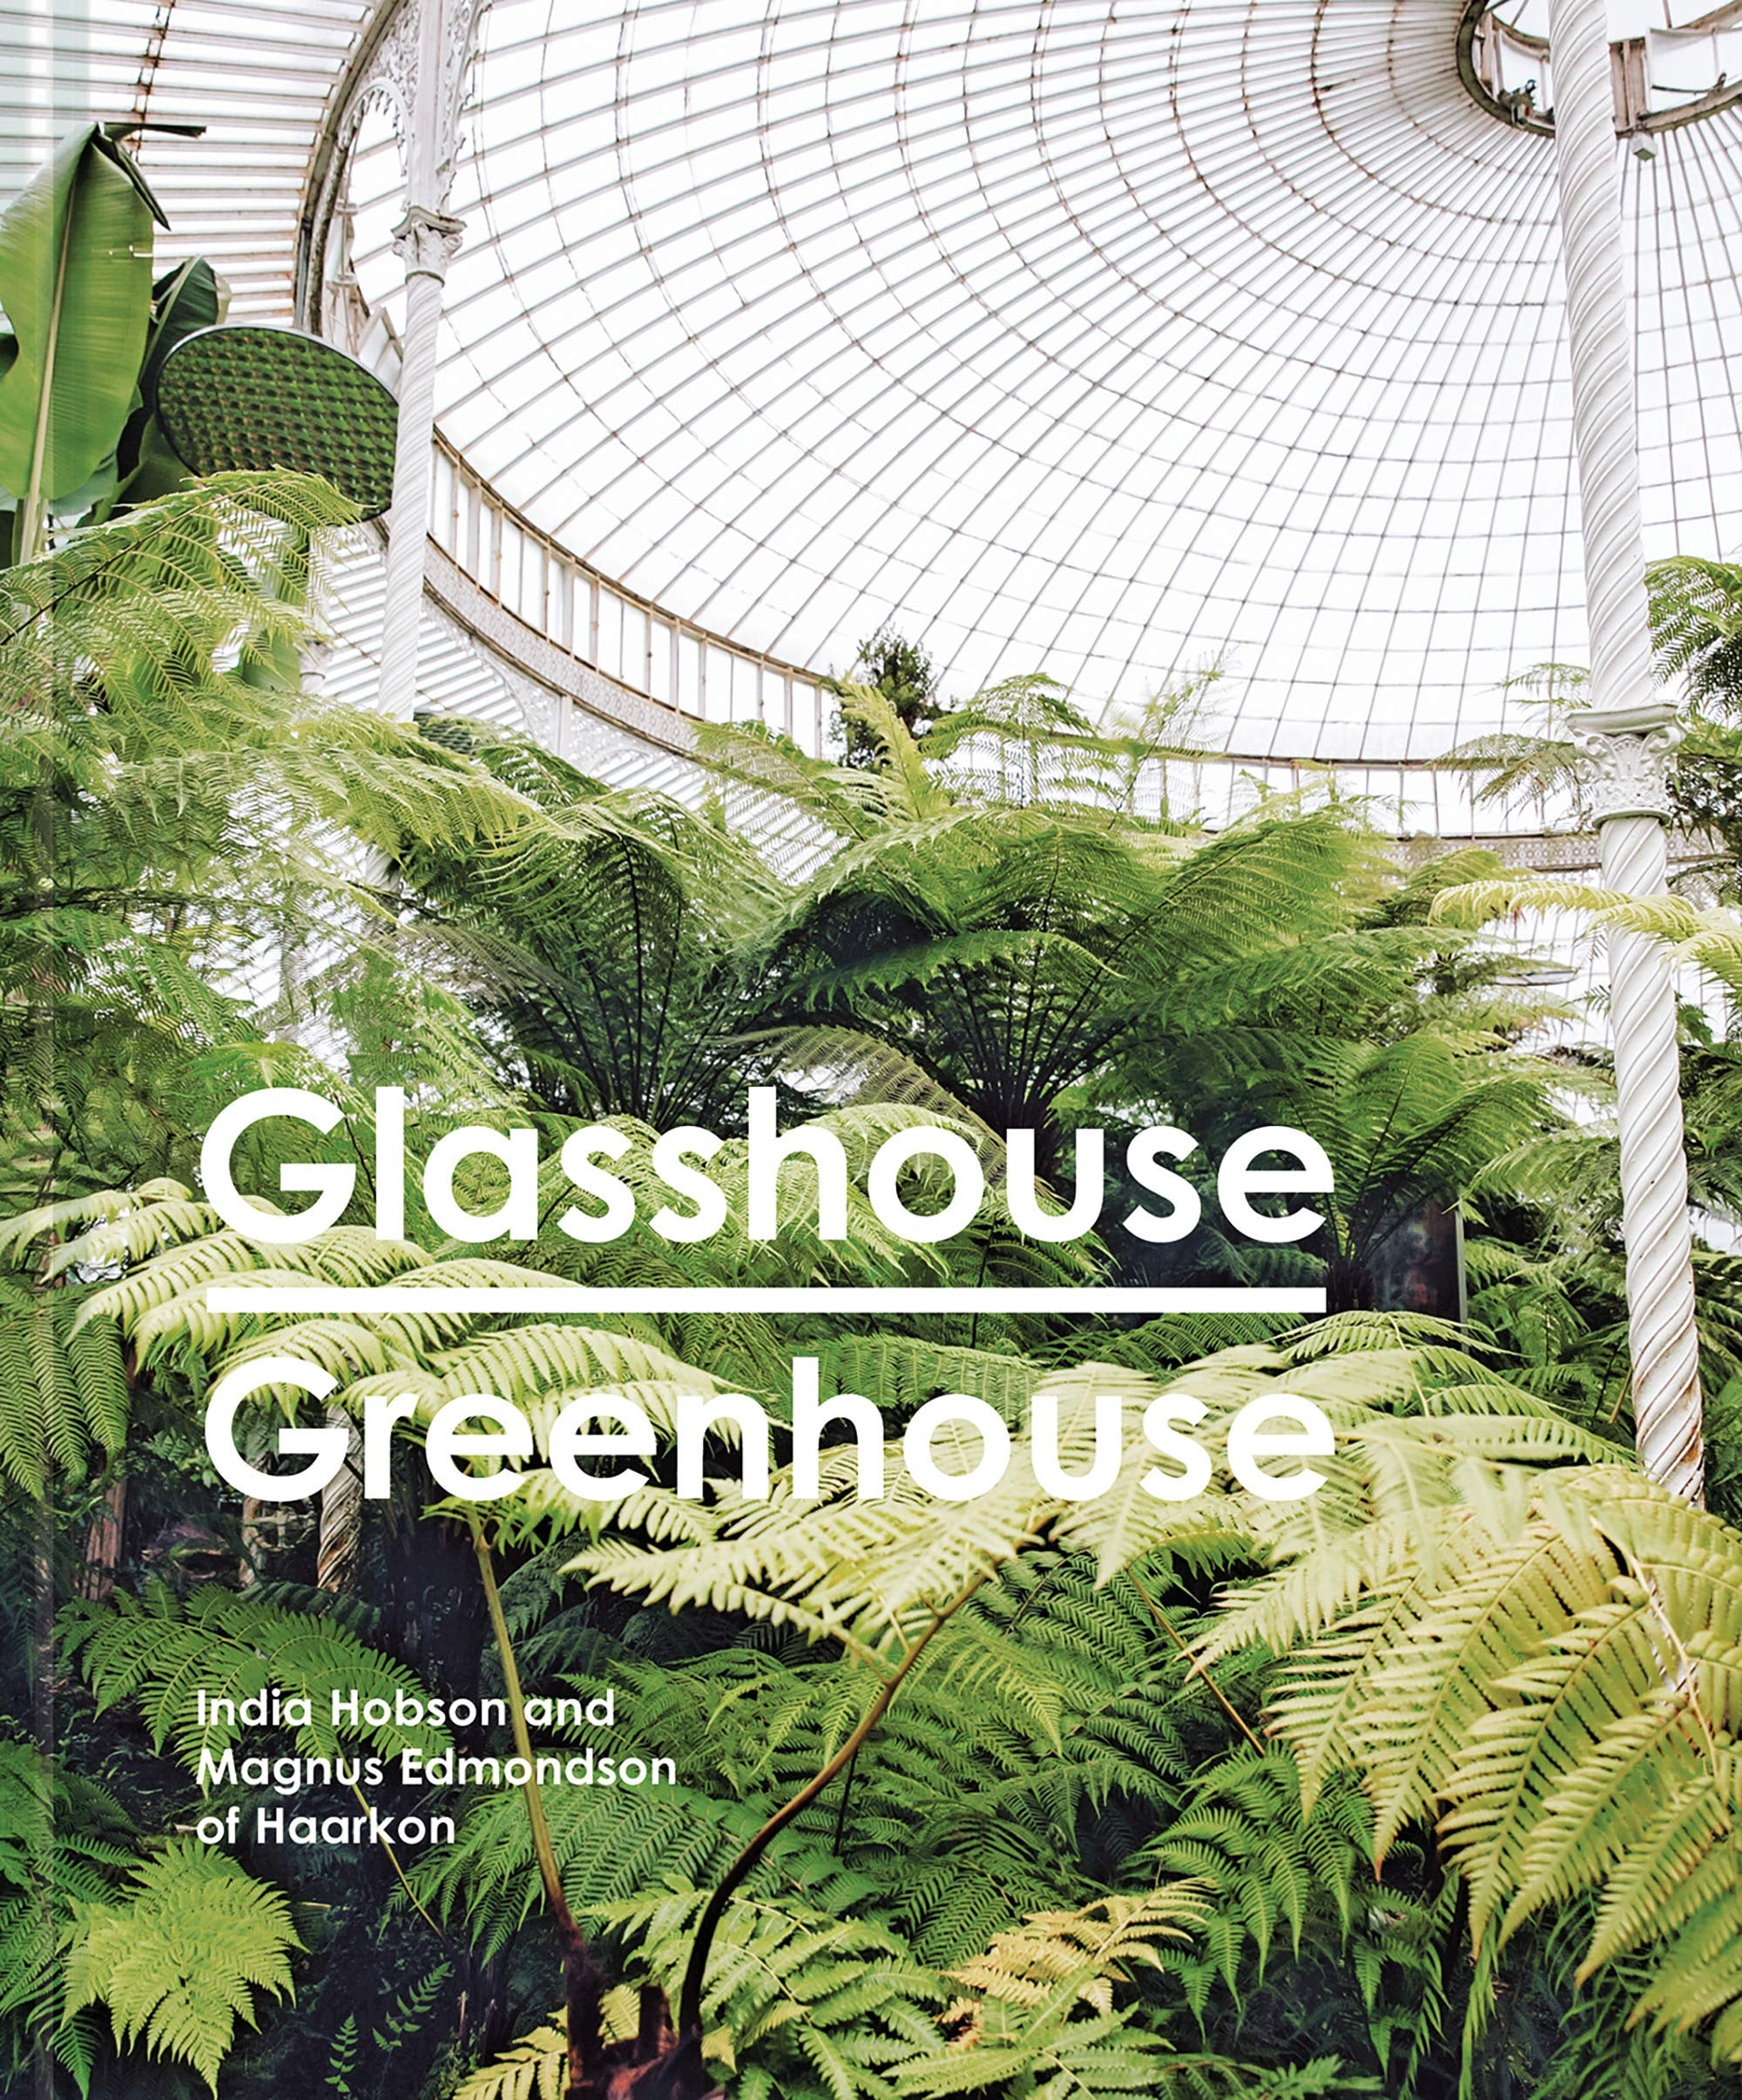 Glasshouse Greenhouse by India Hobsun and Magnus Edmonson of Haarkon